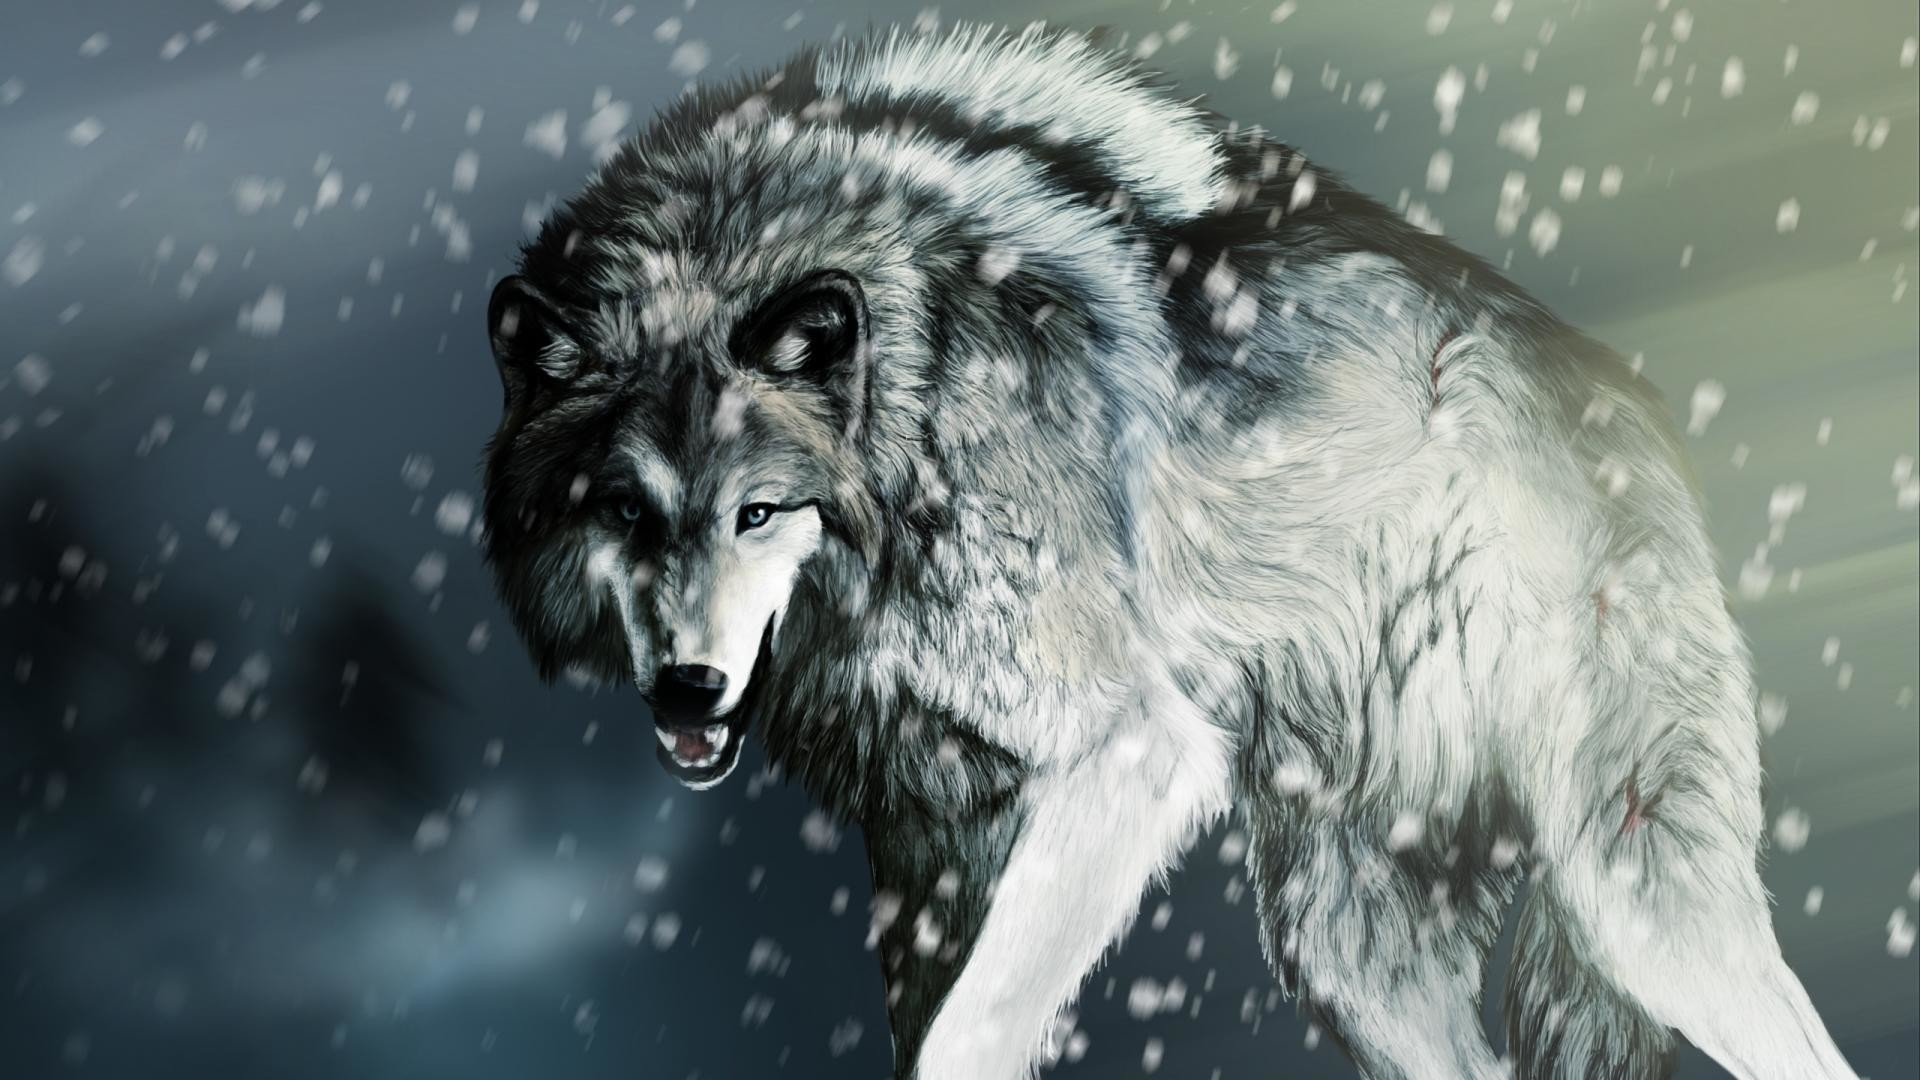 werewolf art wallpaper